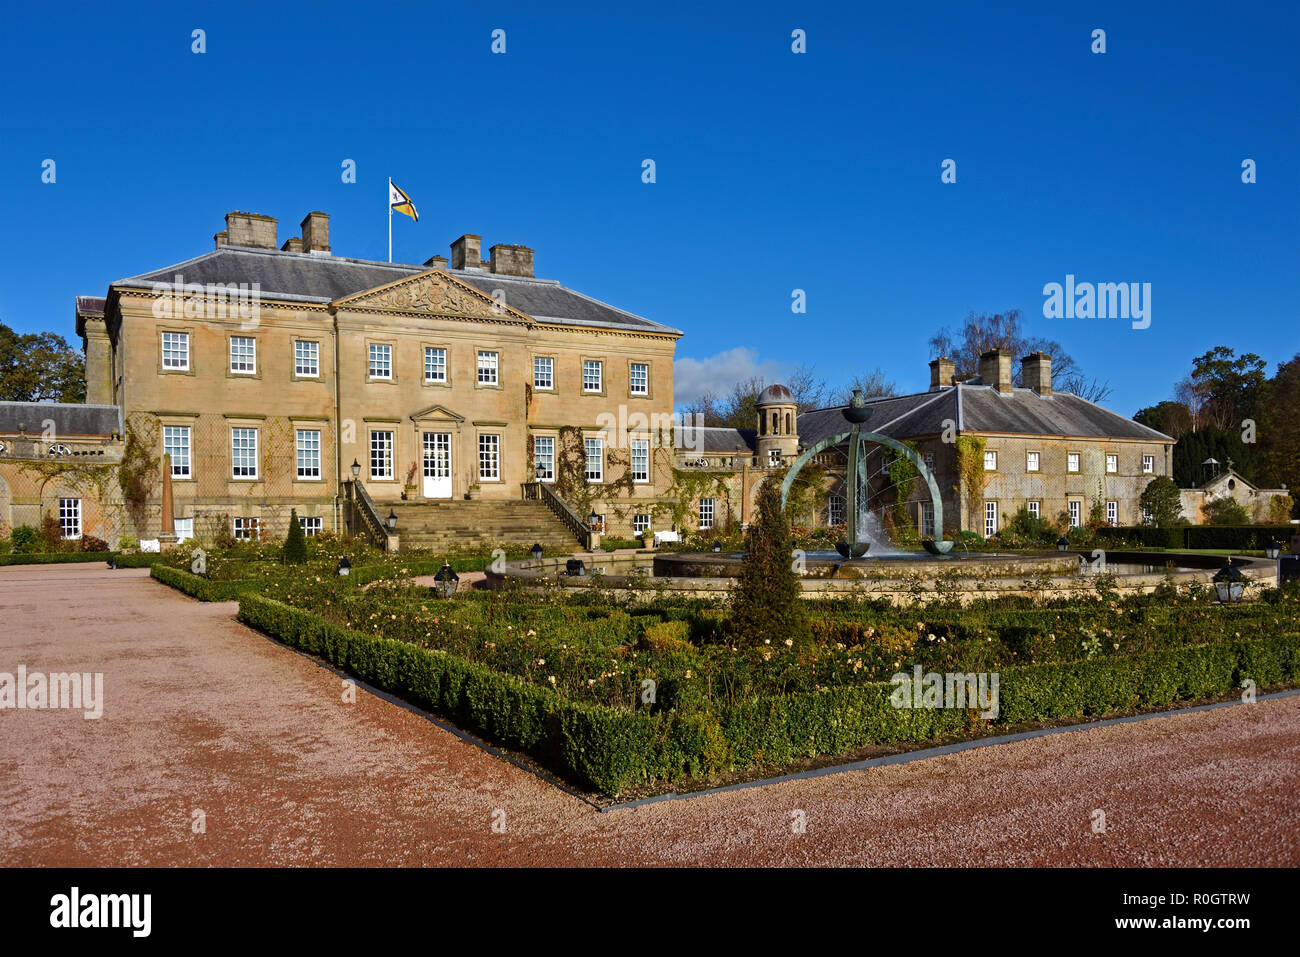 south-facade-dumfries-house-cumnock-east-ayrshire-scotland-united-kingdom-europe-R0GTRW.jpg